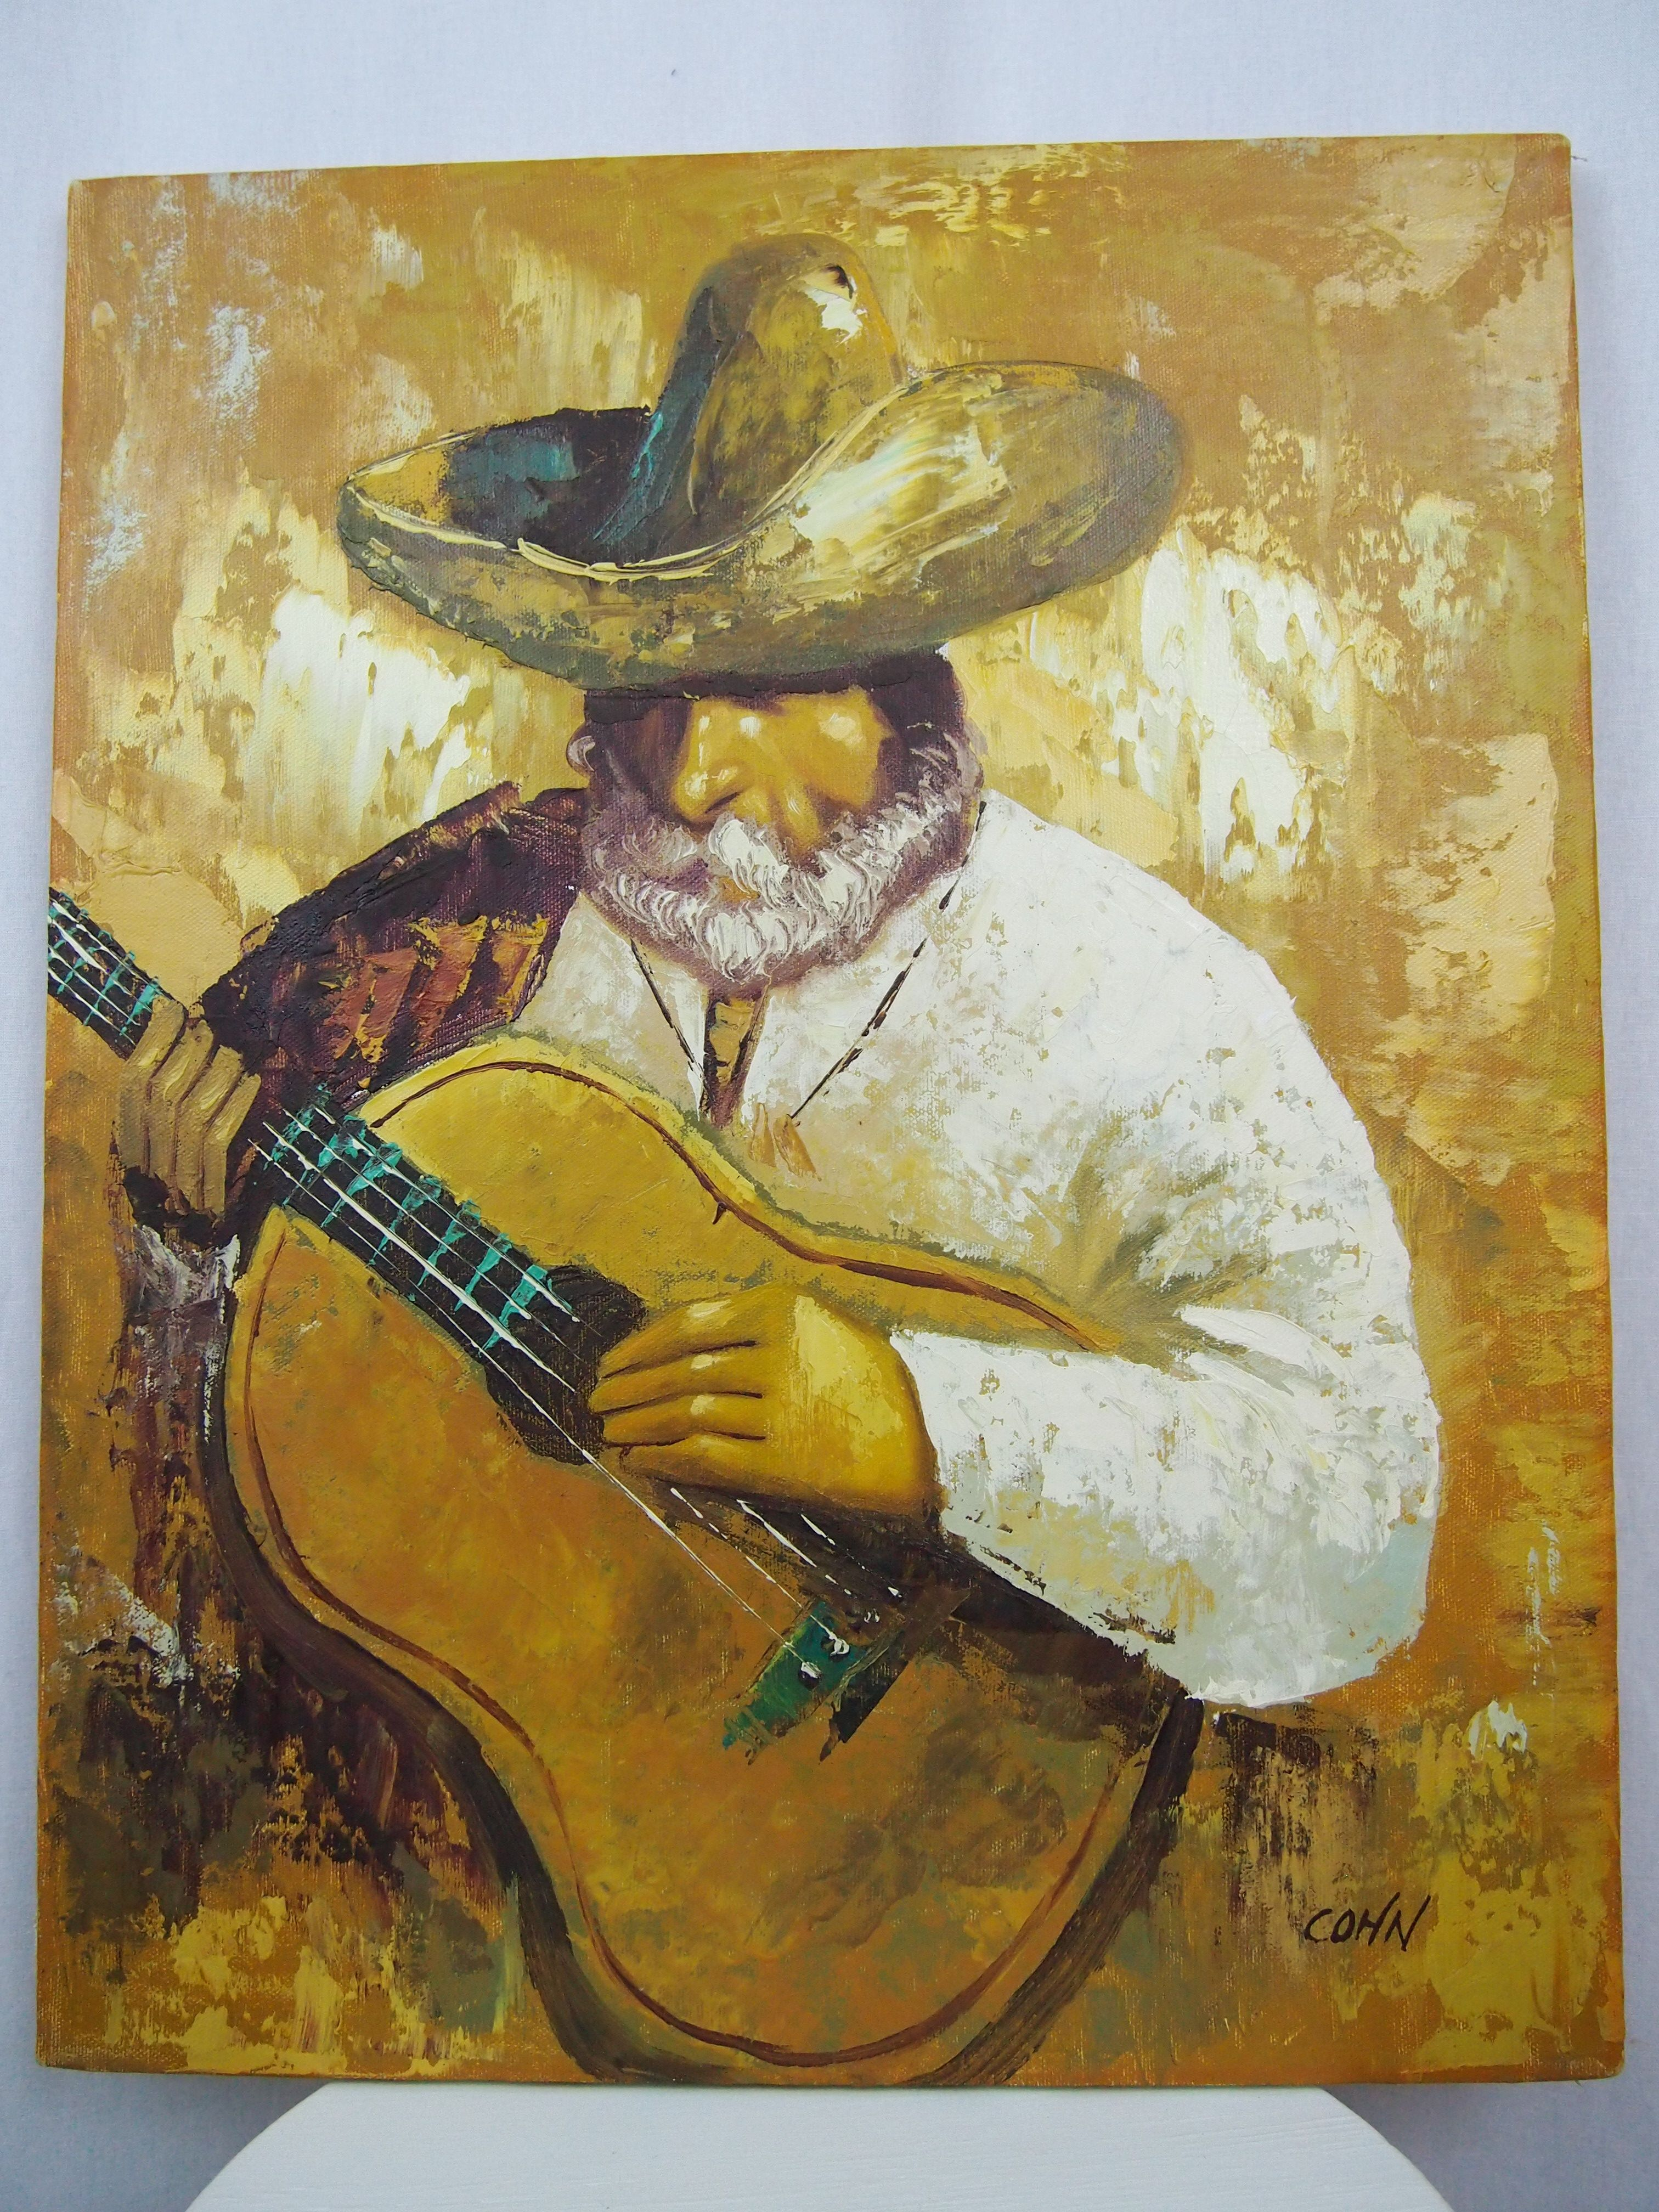 Mexican Man Guitar Sombrero Oil Painting Canvas Signed COHN World ...